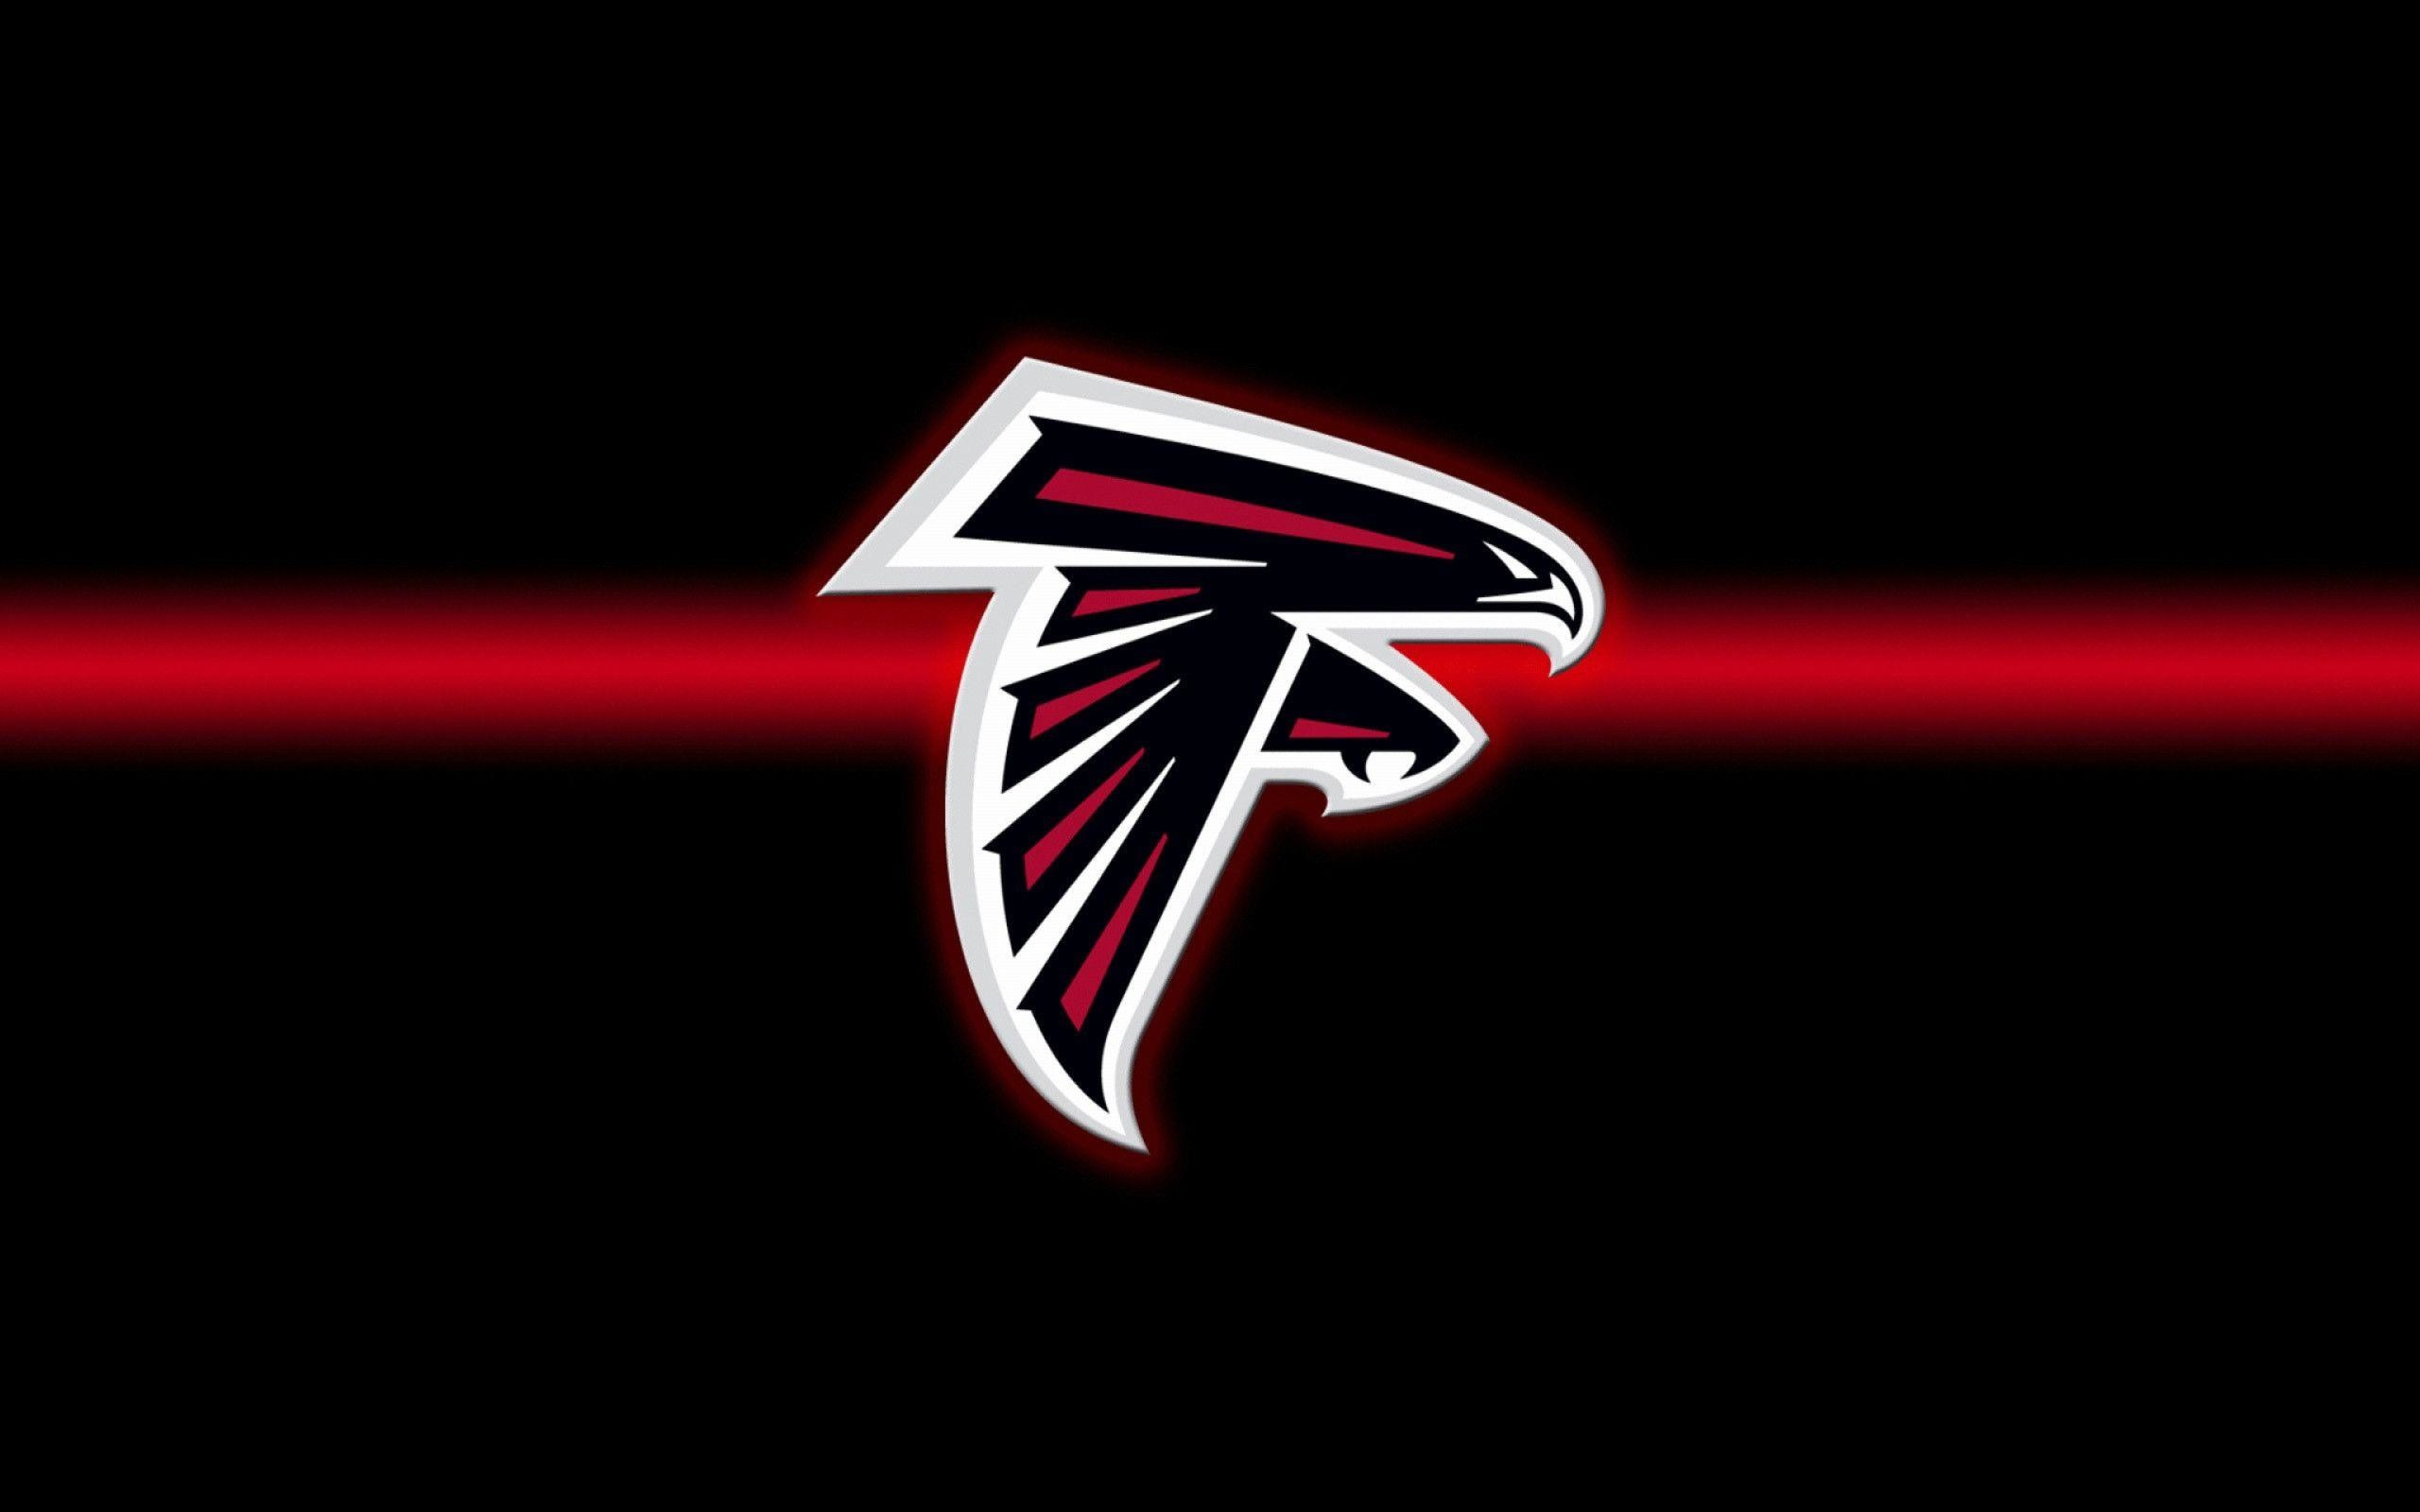 2560x1600 Atlanta Falcons Wallpaper Desktop